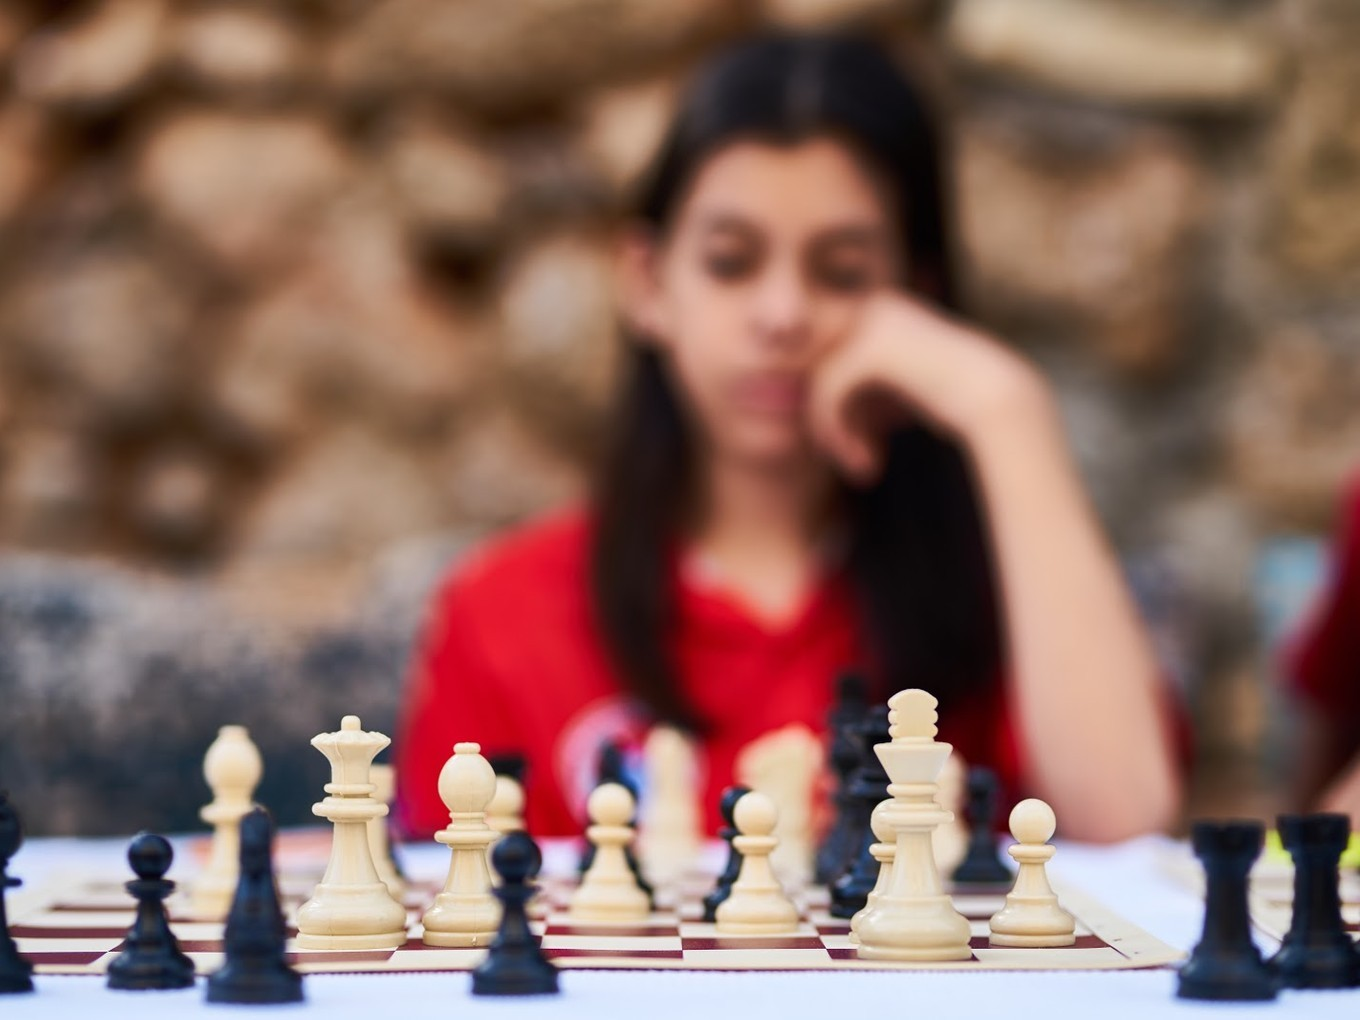 One Move Ahead Chess Scholarship | Bold.org